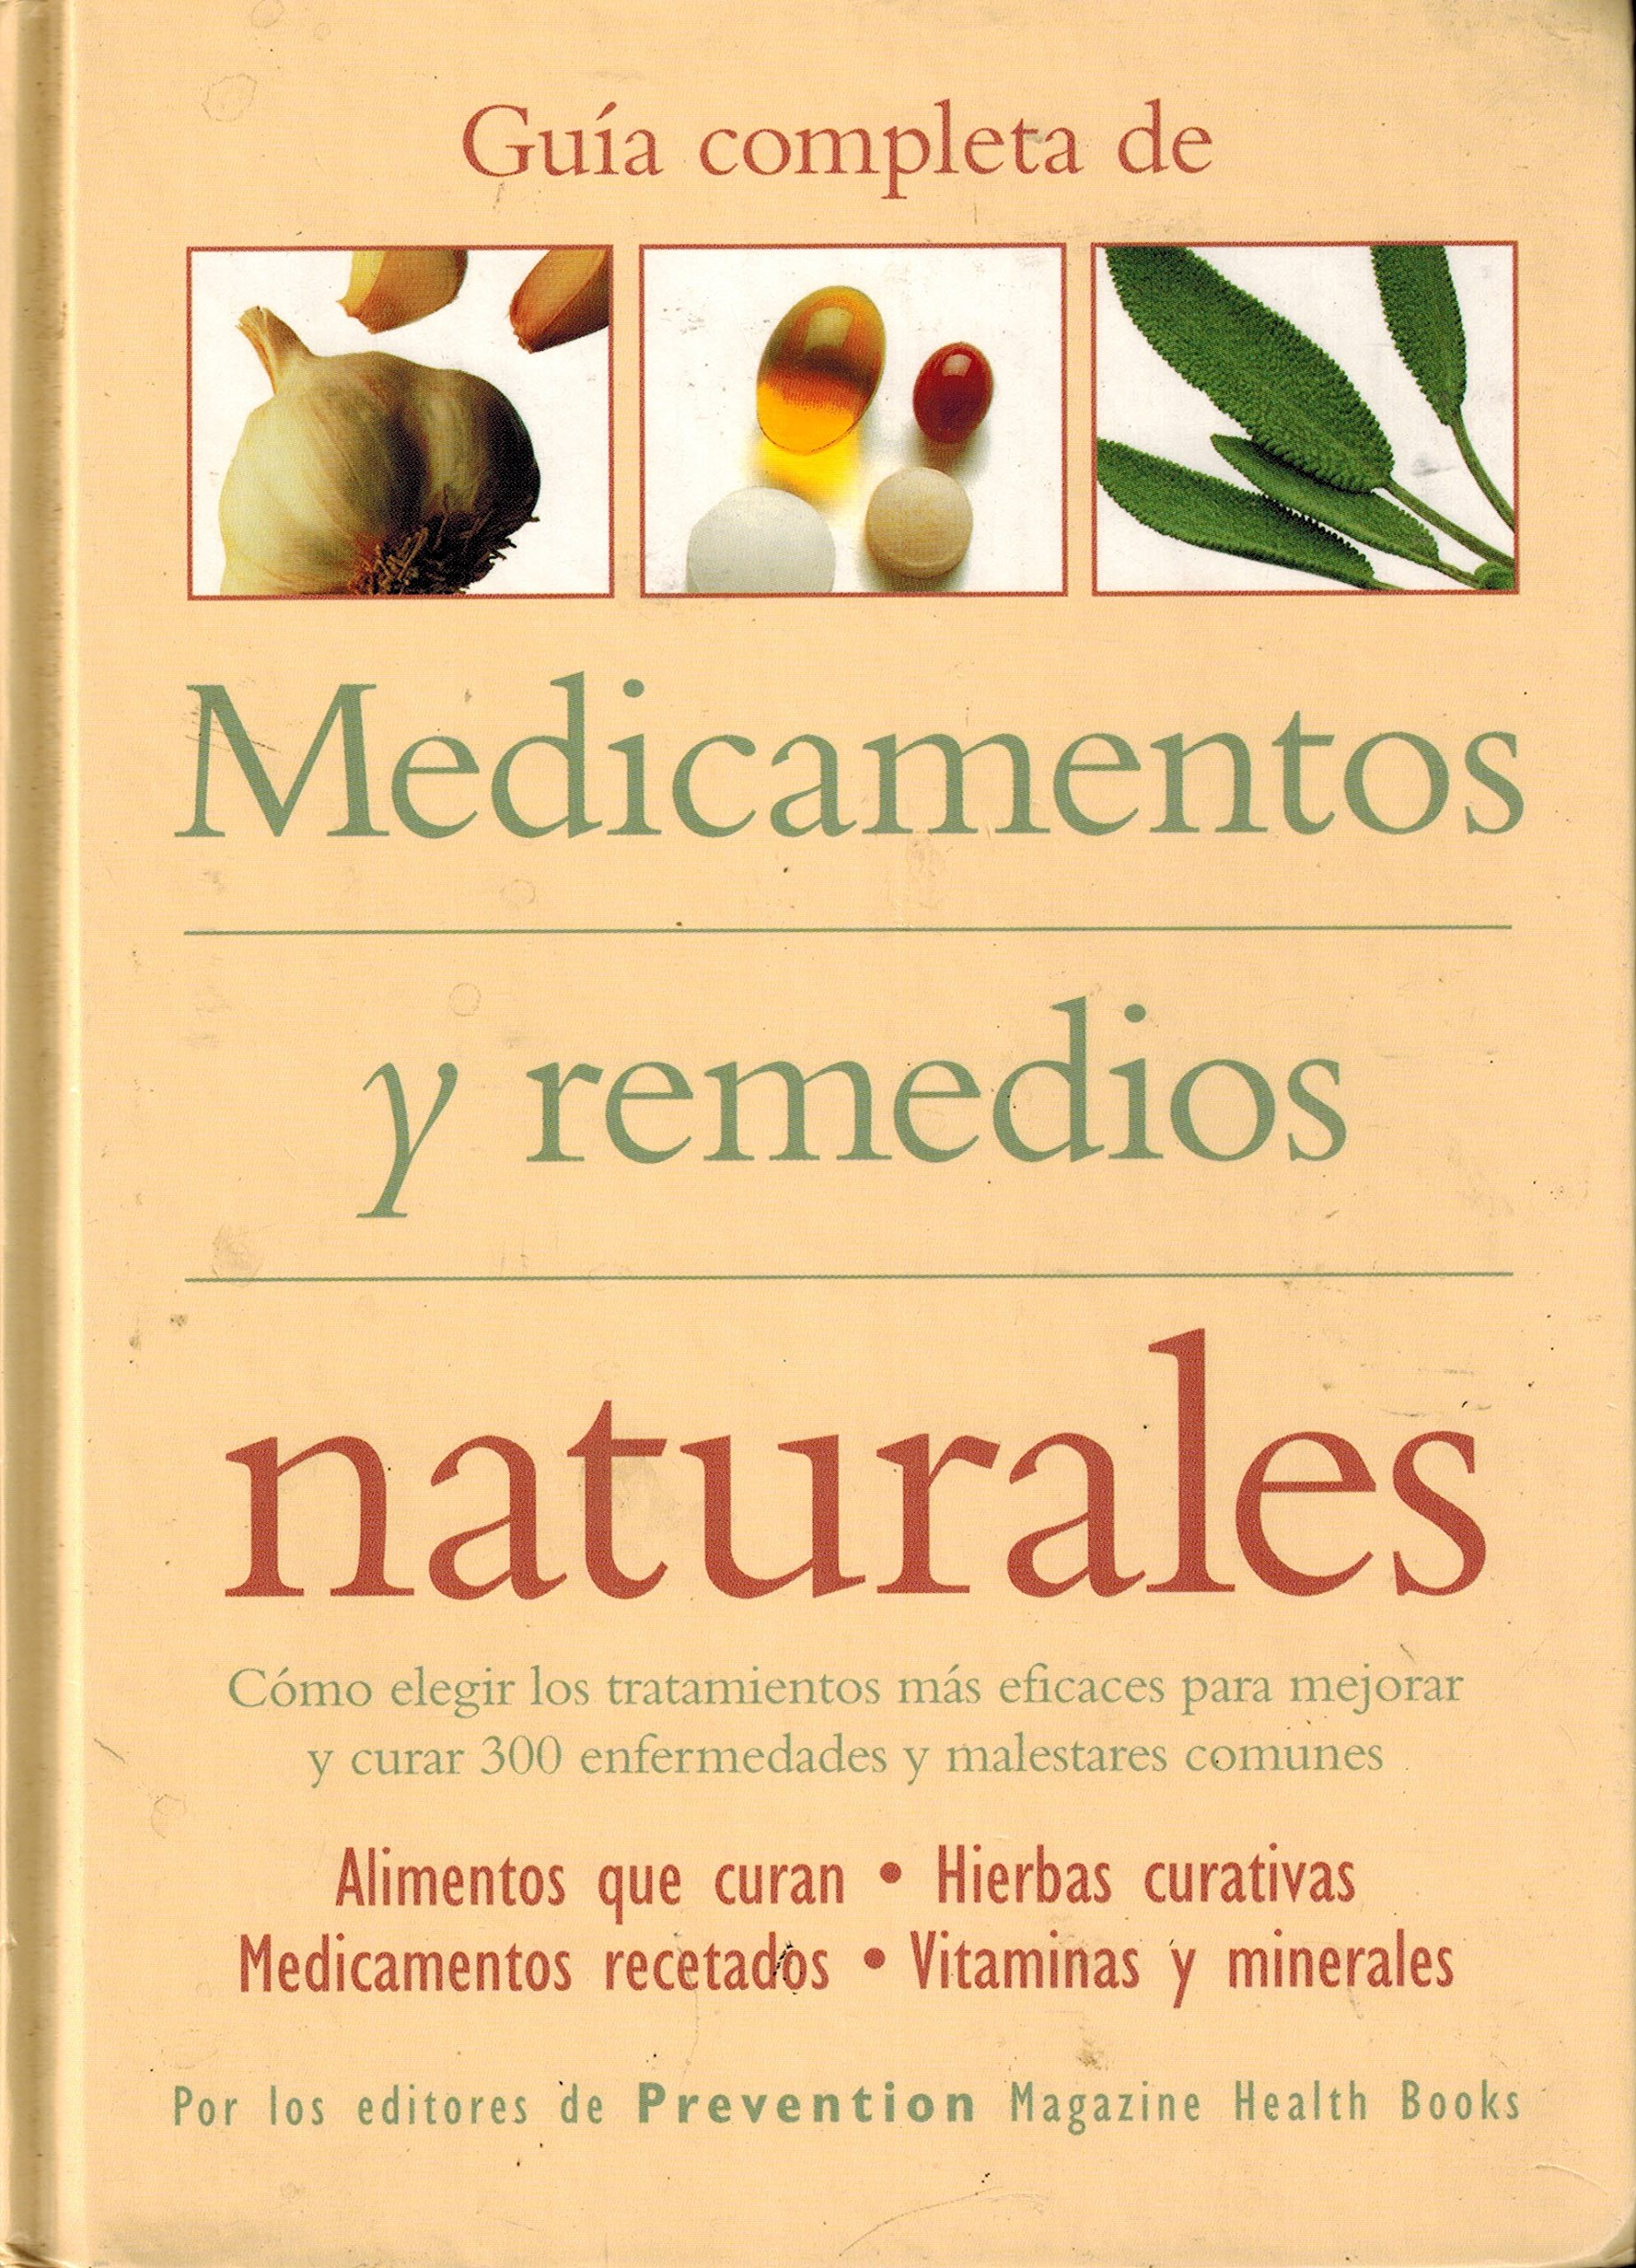 Guia Completa De Medicamentos Y Remedios Naturales: Editores de PREVENTION Magazine Health B: 9780875964652: Amazon.com: Books